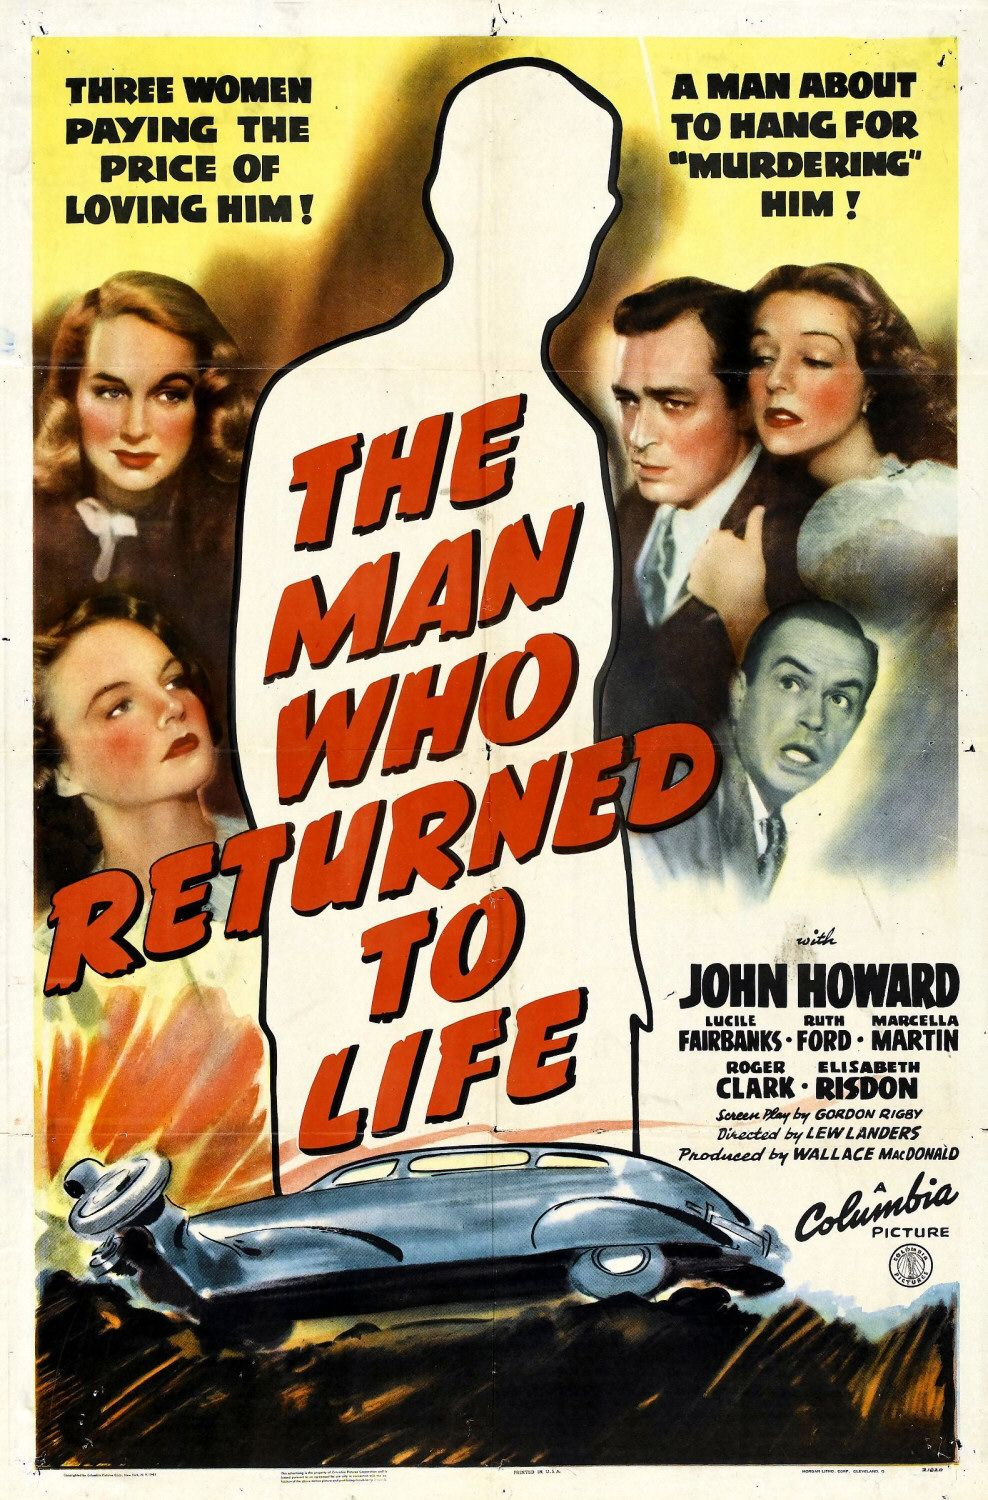 Paul Guilfoyle, Lucile Fairbanks, Ruth Ford, John Howard, and Marcella Martin in The Man Who Returned to Life (1942)